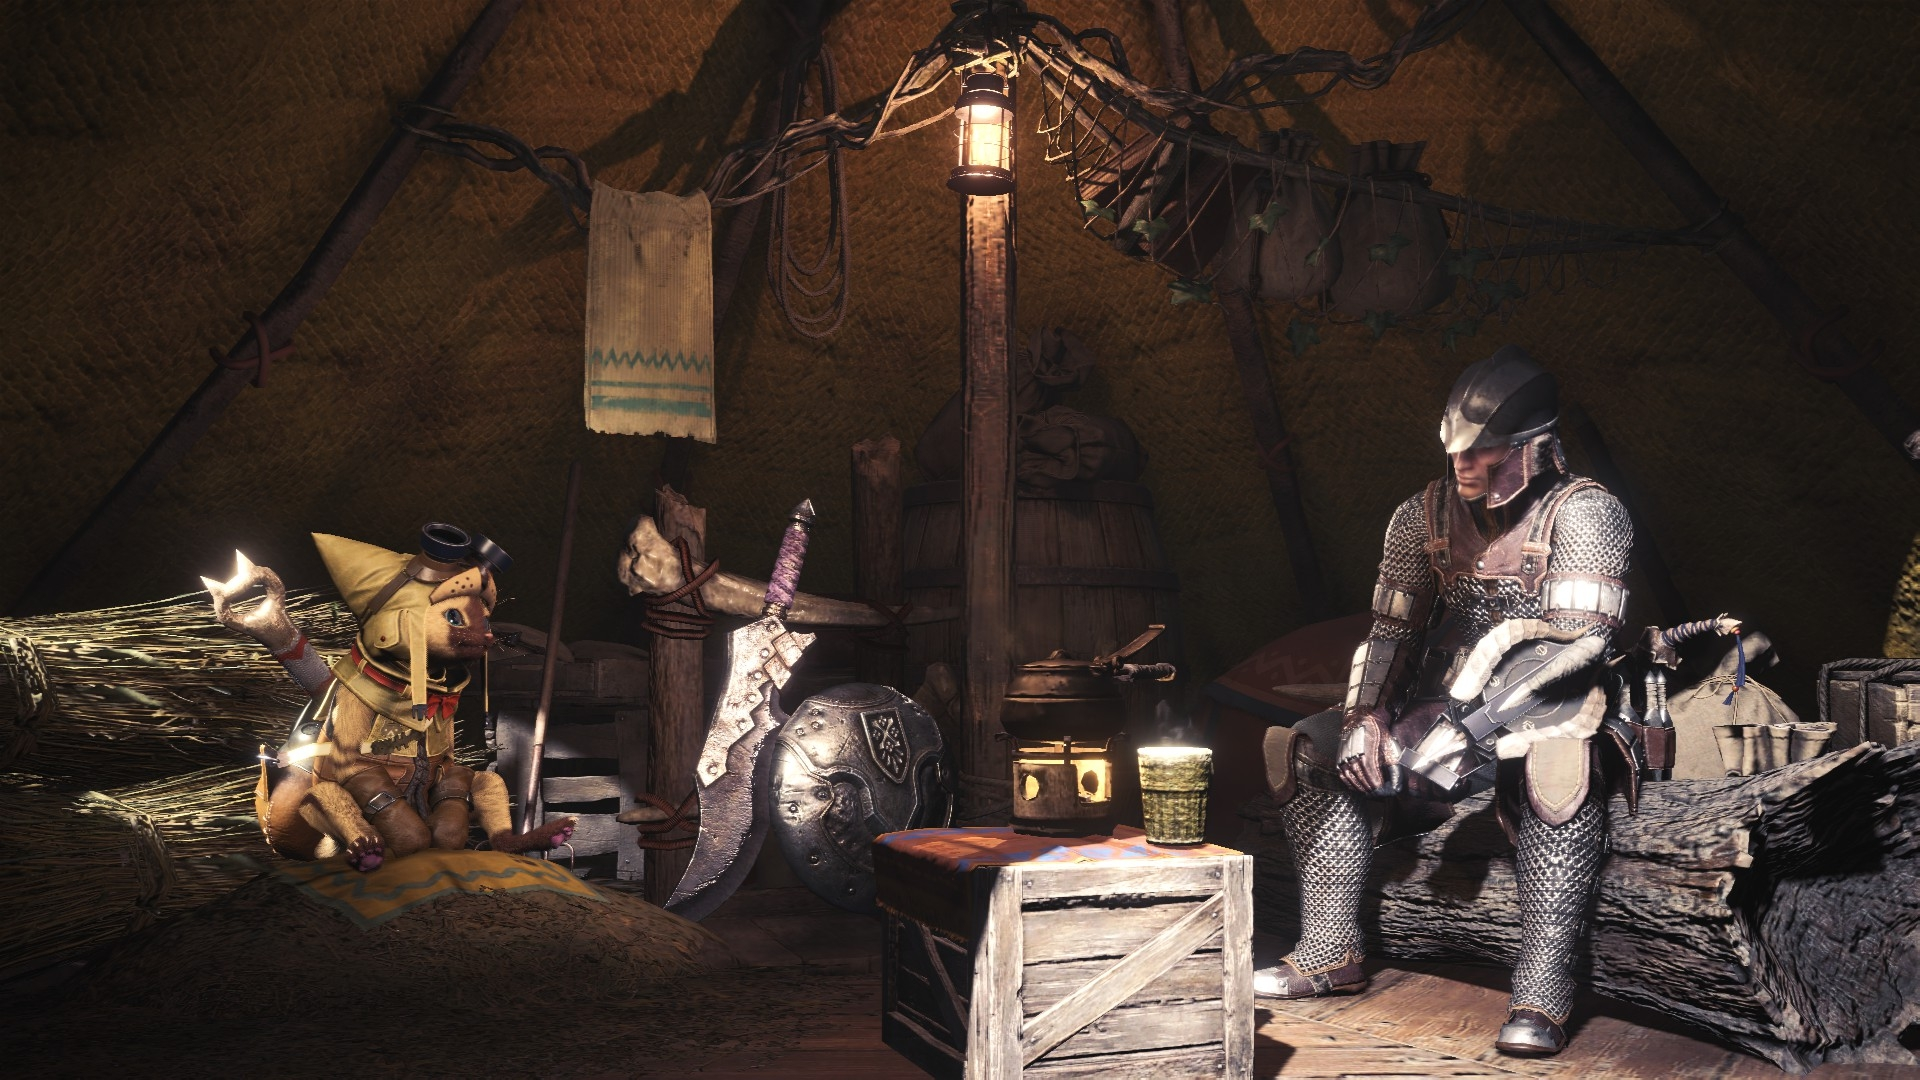 This is true: in promoting their new HD texture pack, Capcom have chosen five desultory, bland screenshots, including one of a man and cat looking bored in a brown tent.